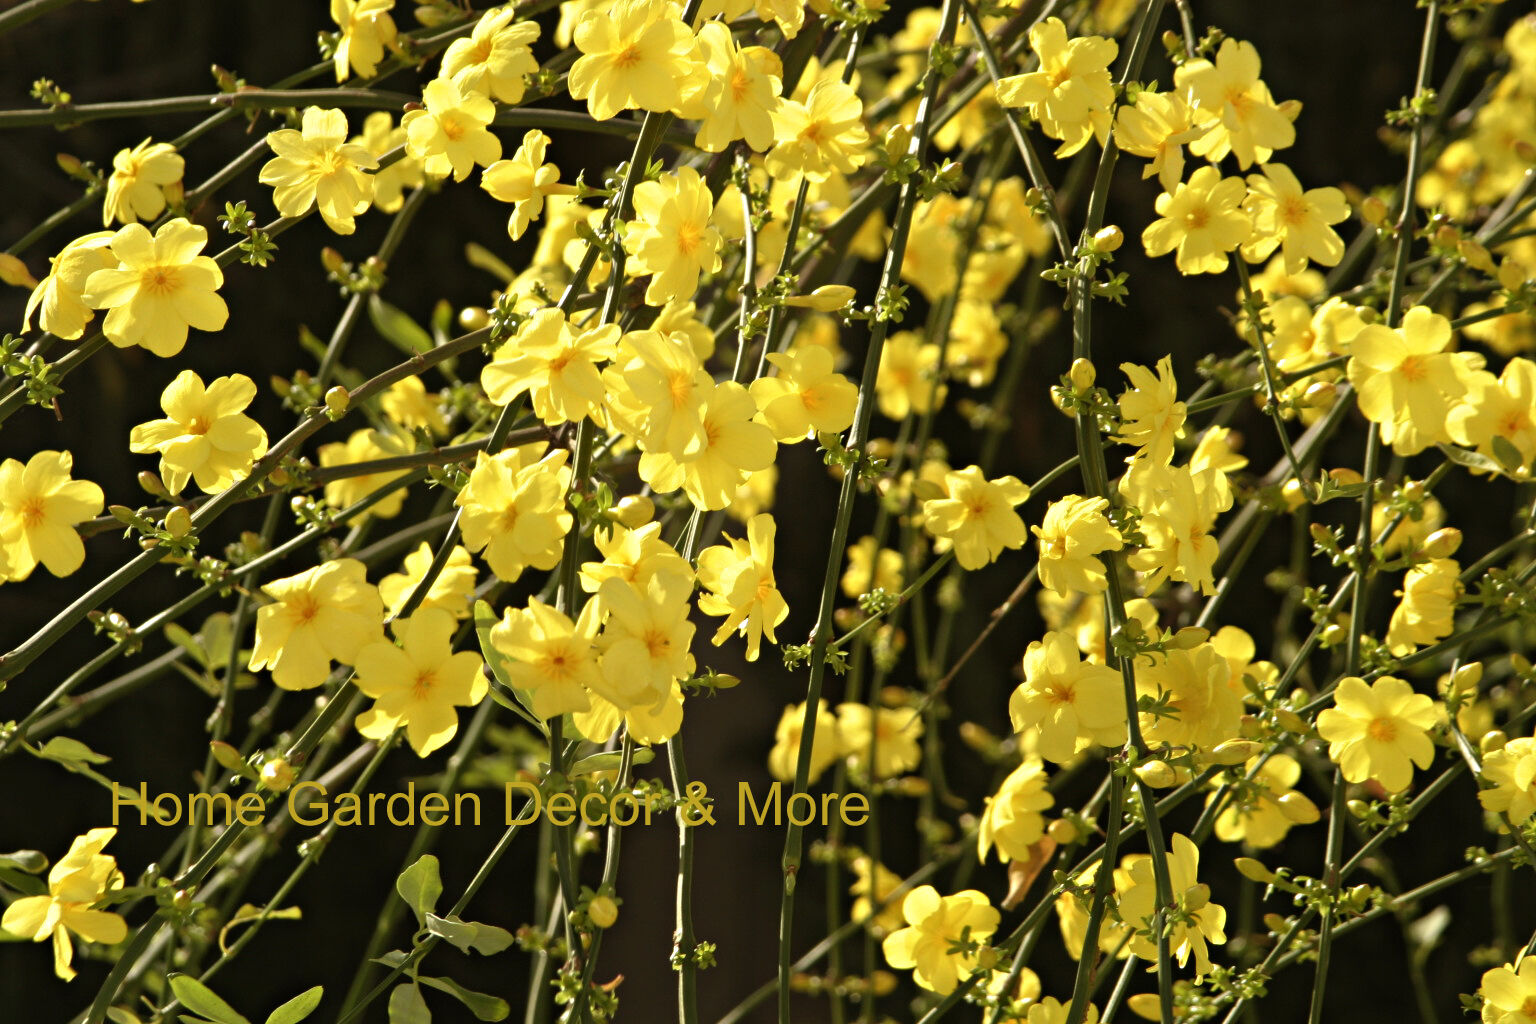 Chinese Bright Yellow Flowers Winter Jasmine Vine Shrub Live Rooted